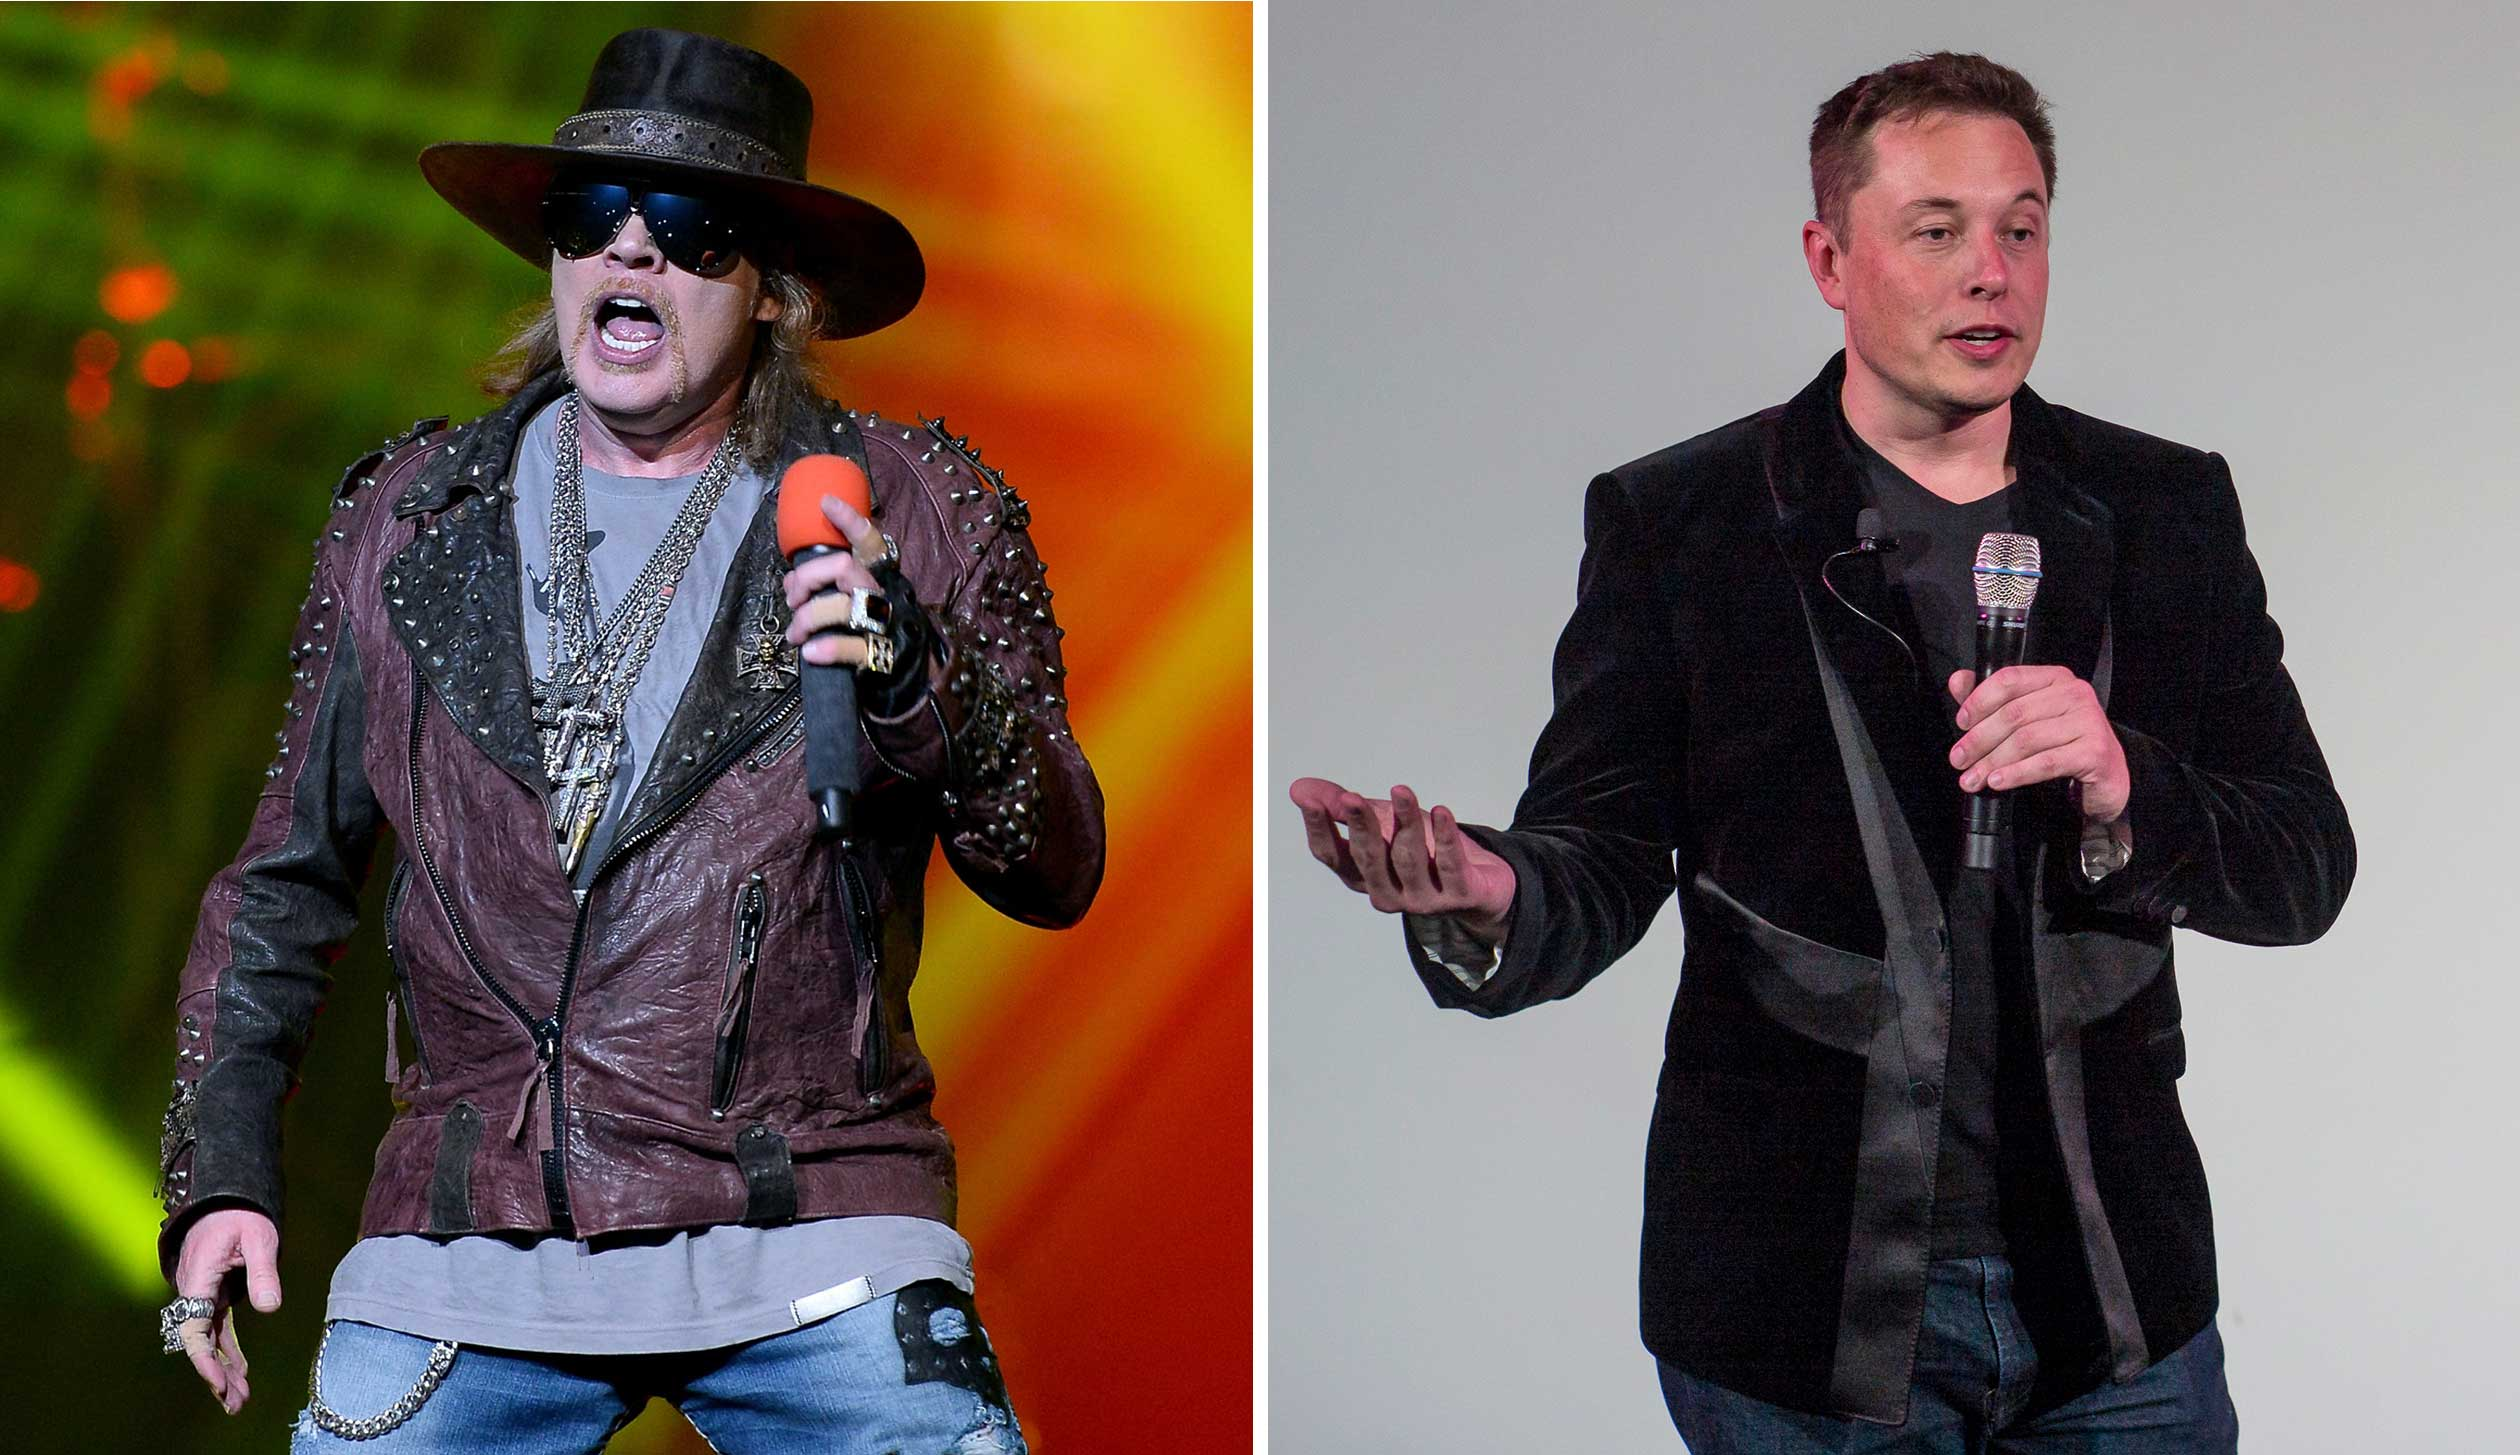 Tesla customer compares Elon Musk to Axl Rose | Fortune